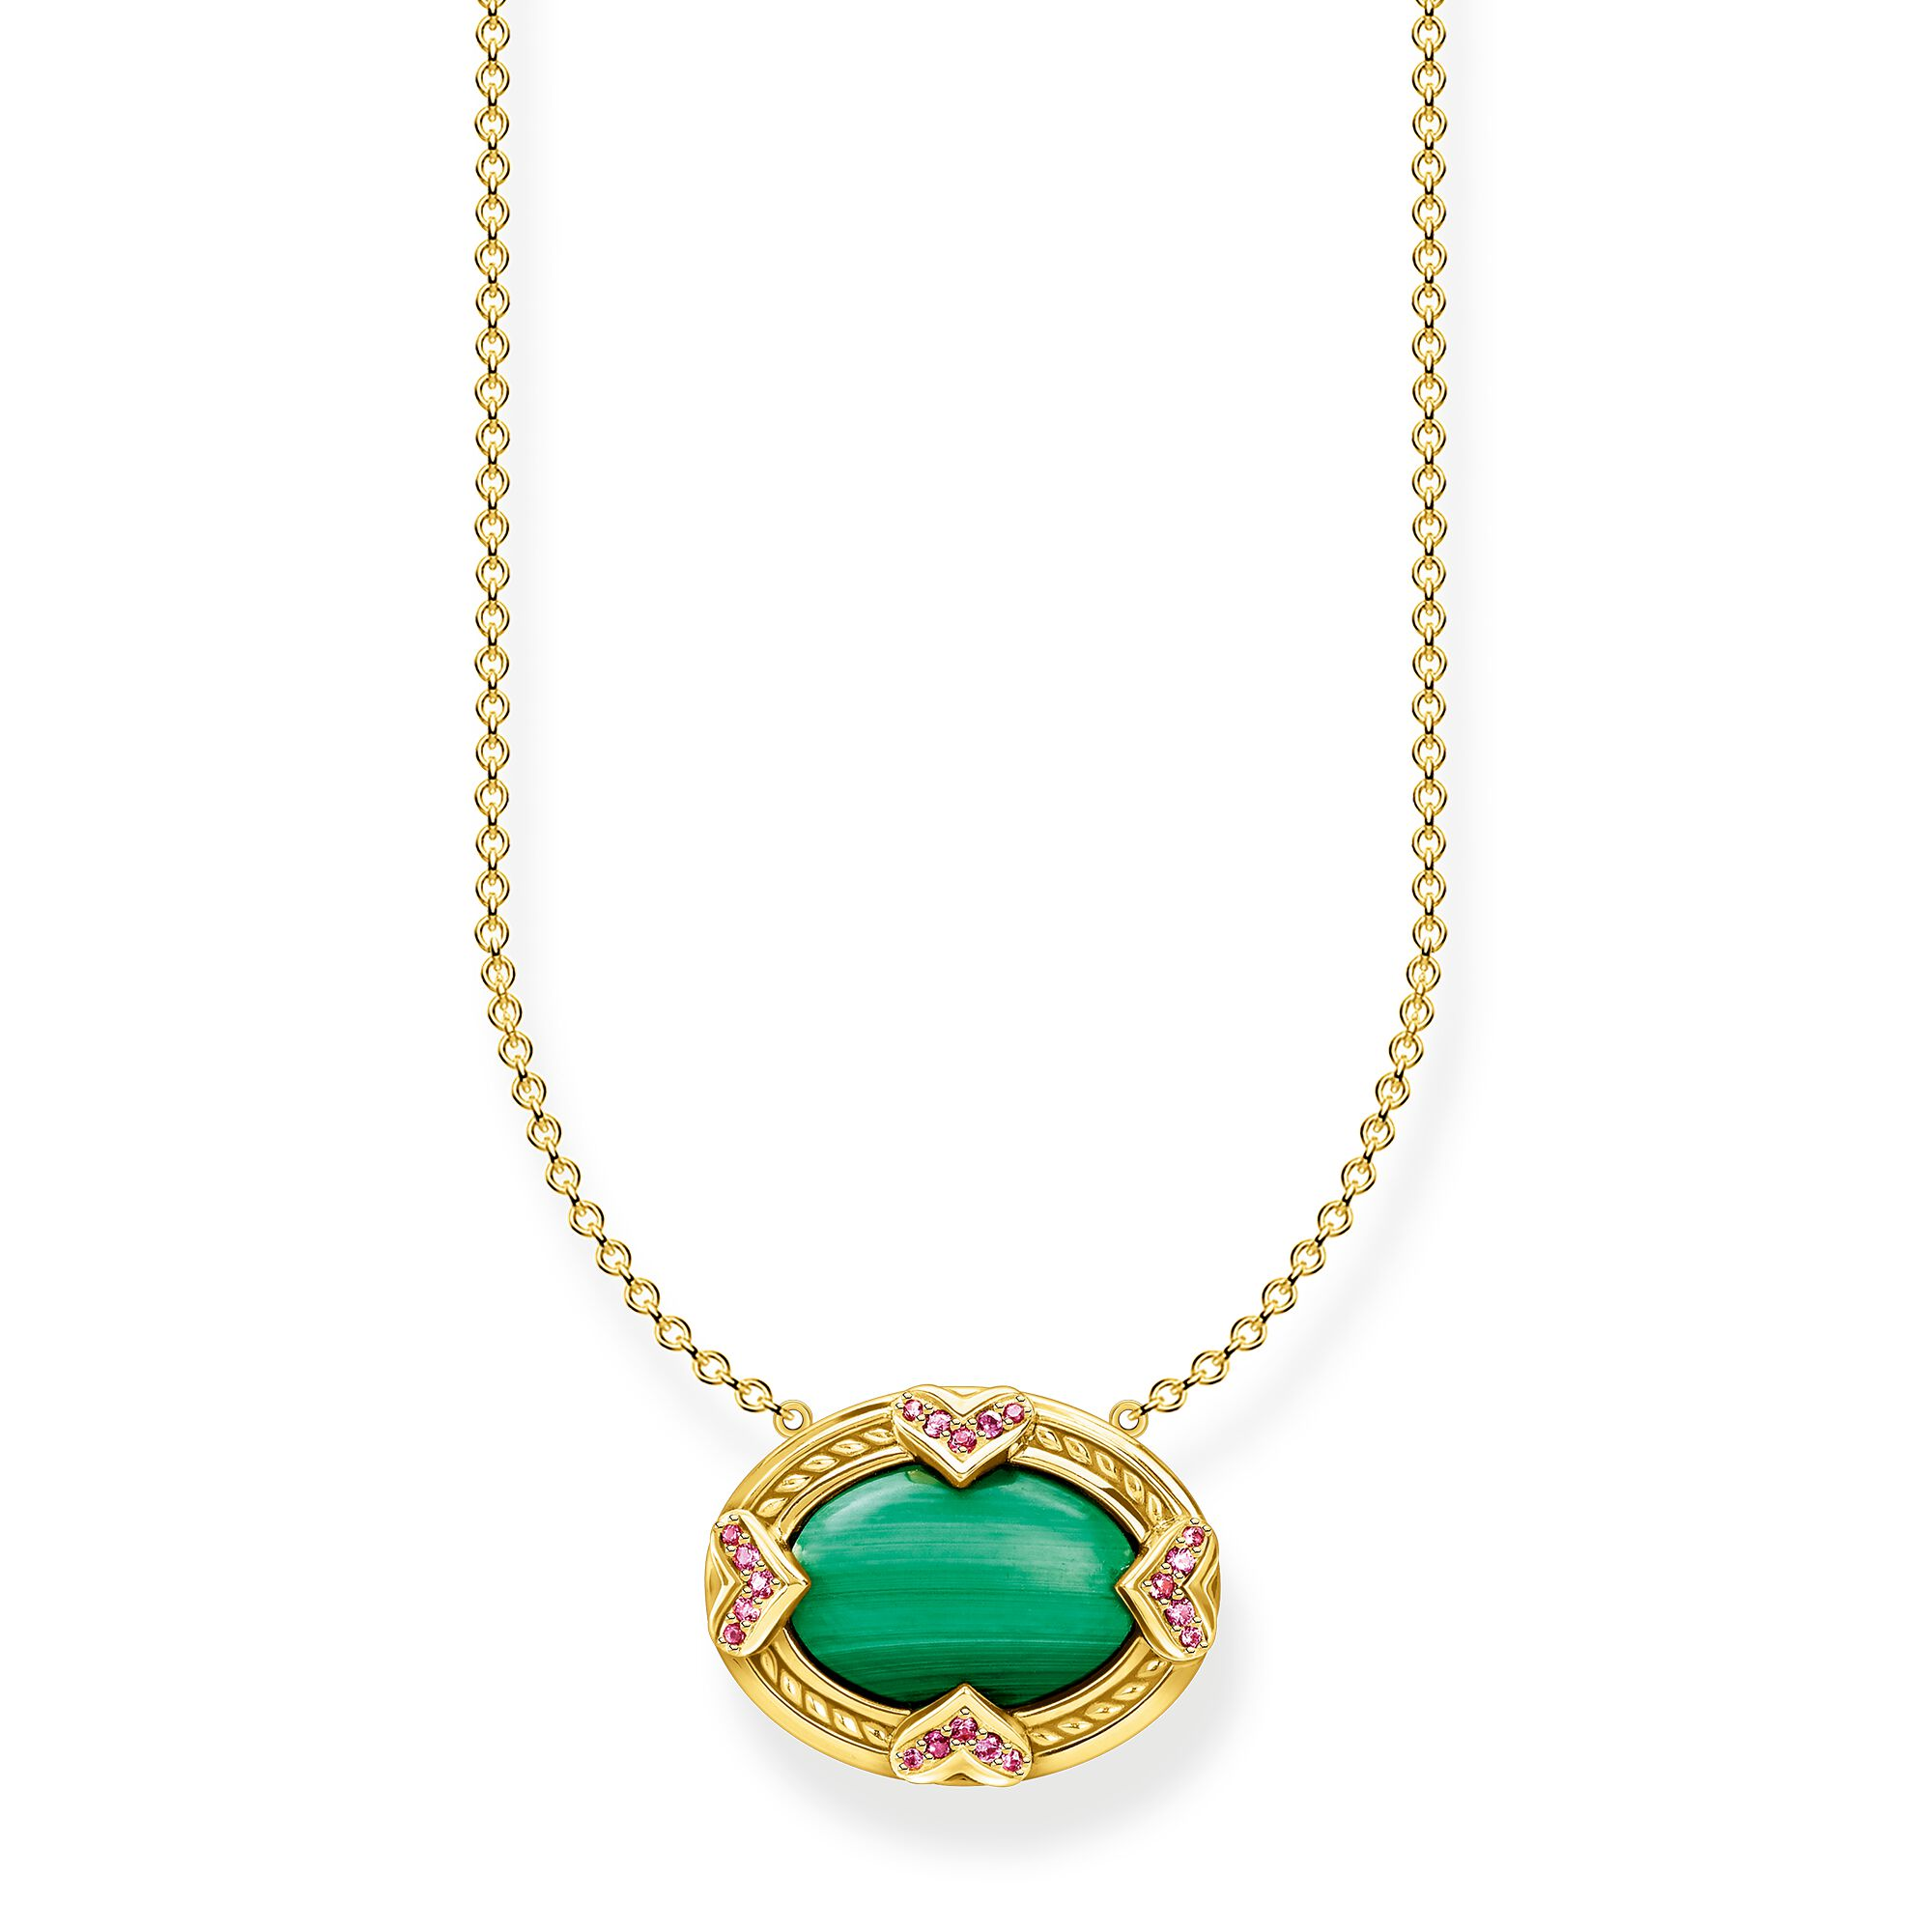 Necklace green stone gold